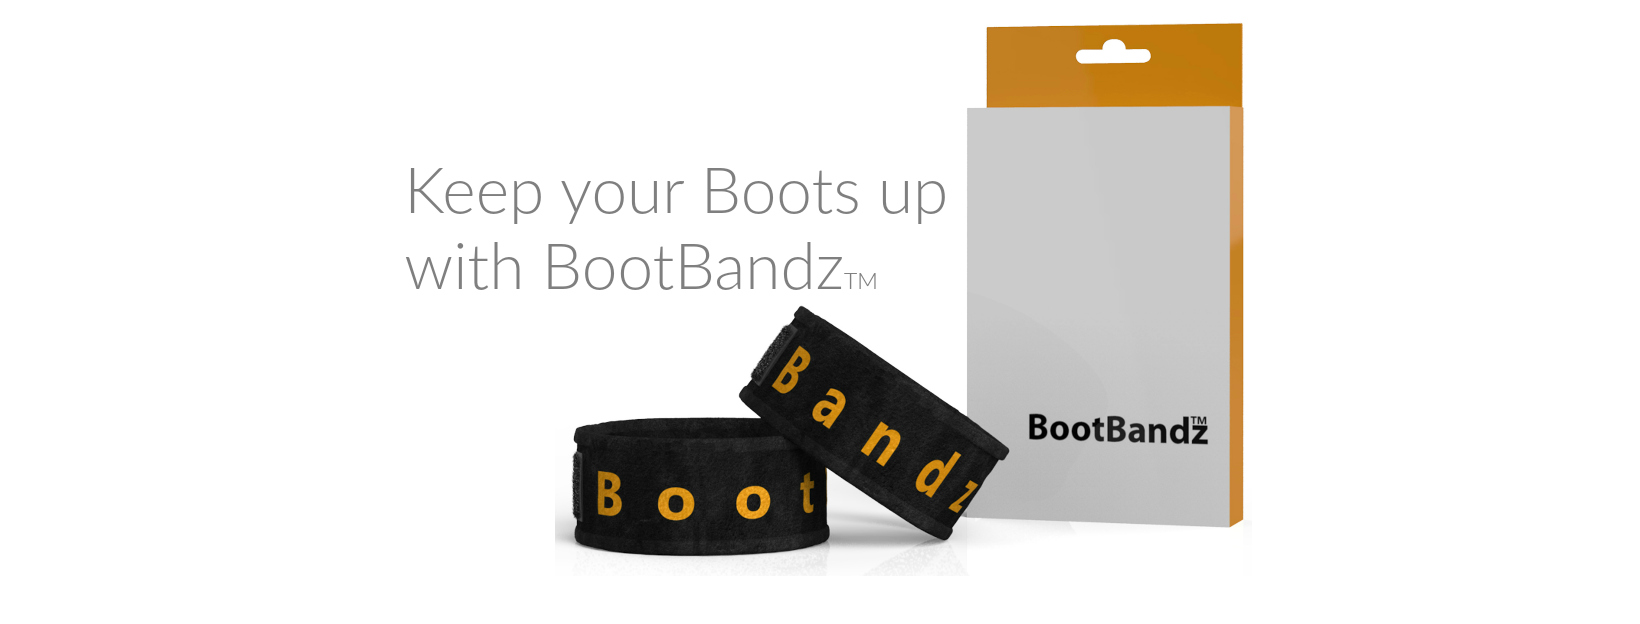 BootBandz Launches to Prevent Slouching Boots for Fashionable Style